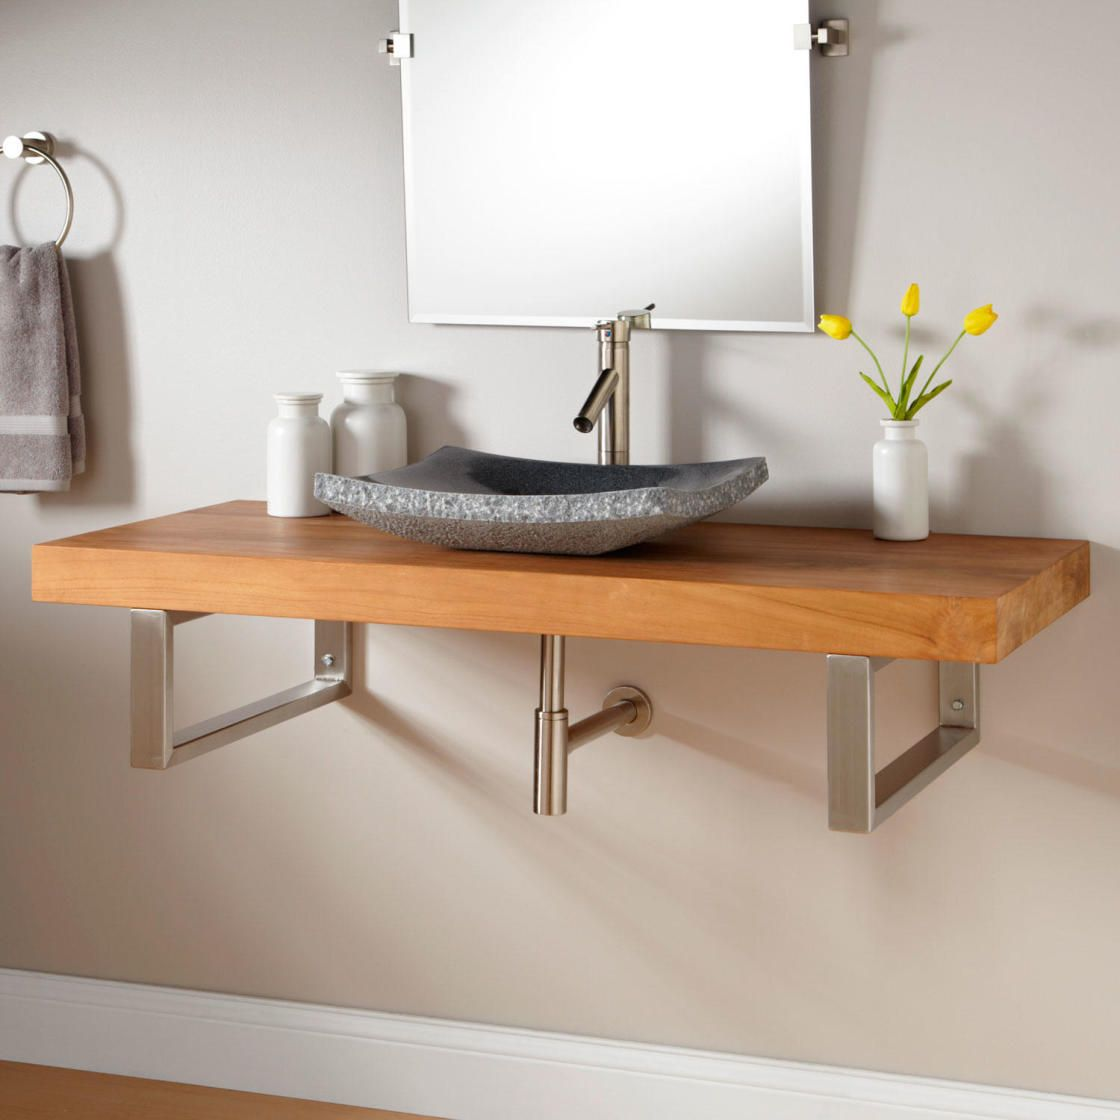 Interesting Wall Mount Vanity Design With Minimalist Natural Oak Wood Floating Washstand Using Silver Metal Wall Mounted Bathroom Sinks Teak Wall Teak Bathroom